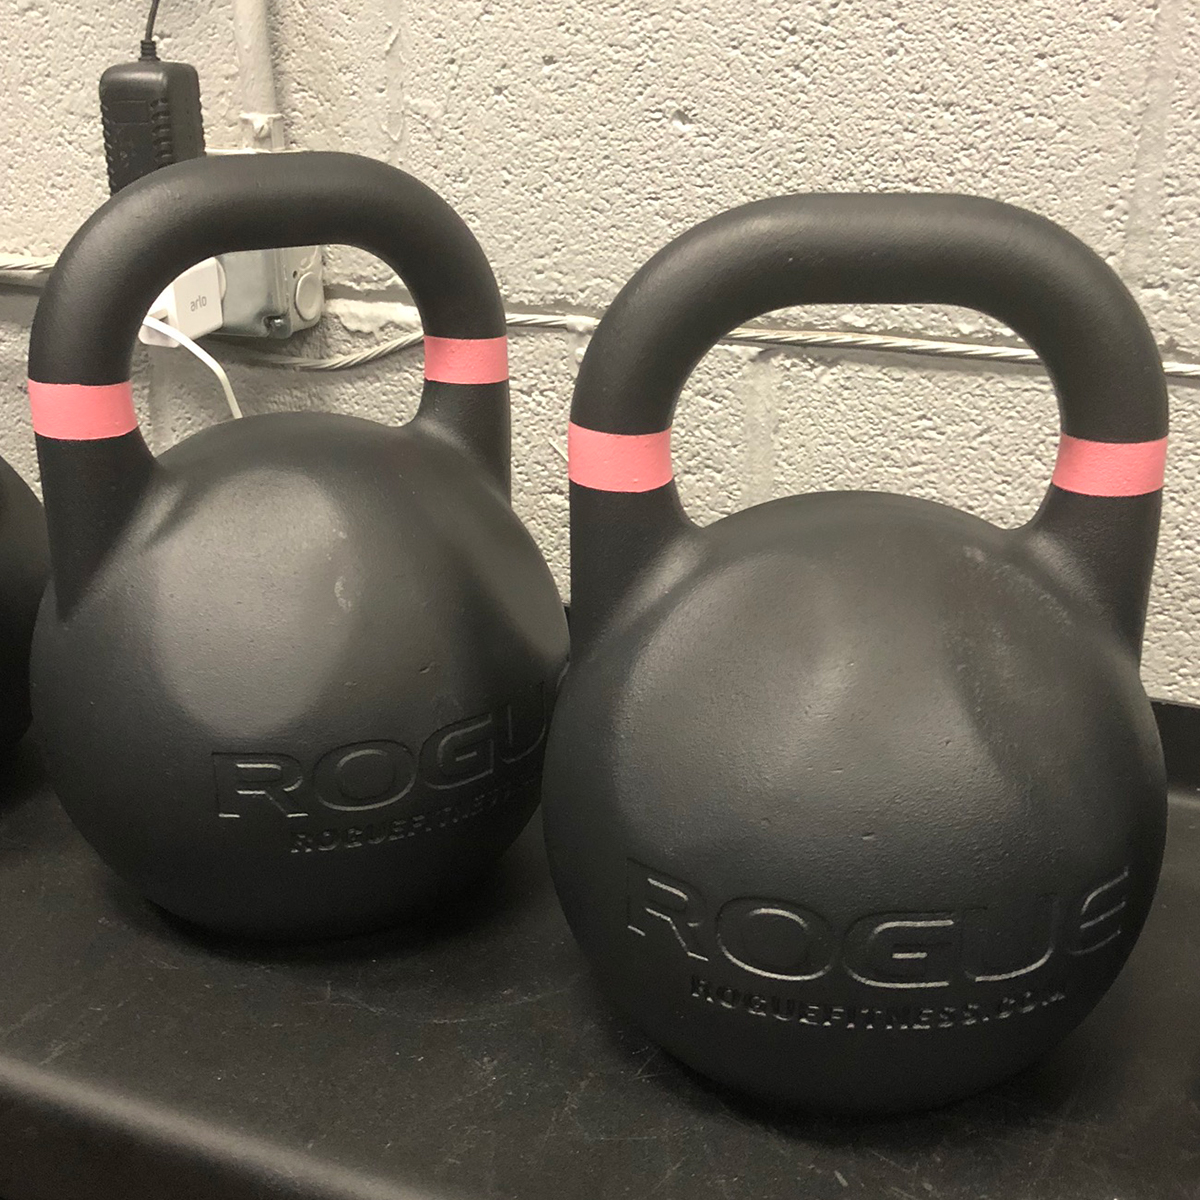 Rogue Fitness Competition Kettlebell 10KG Pink